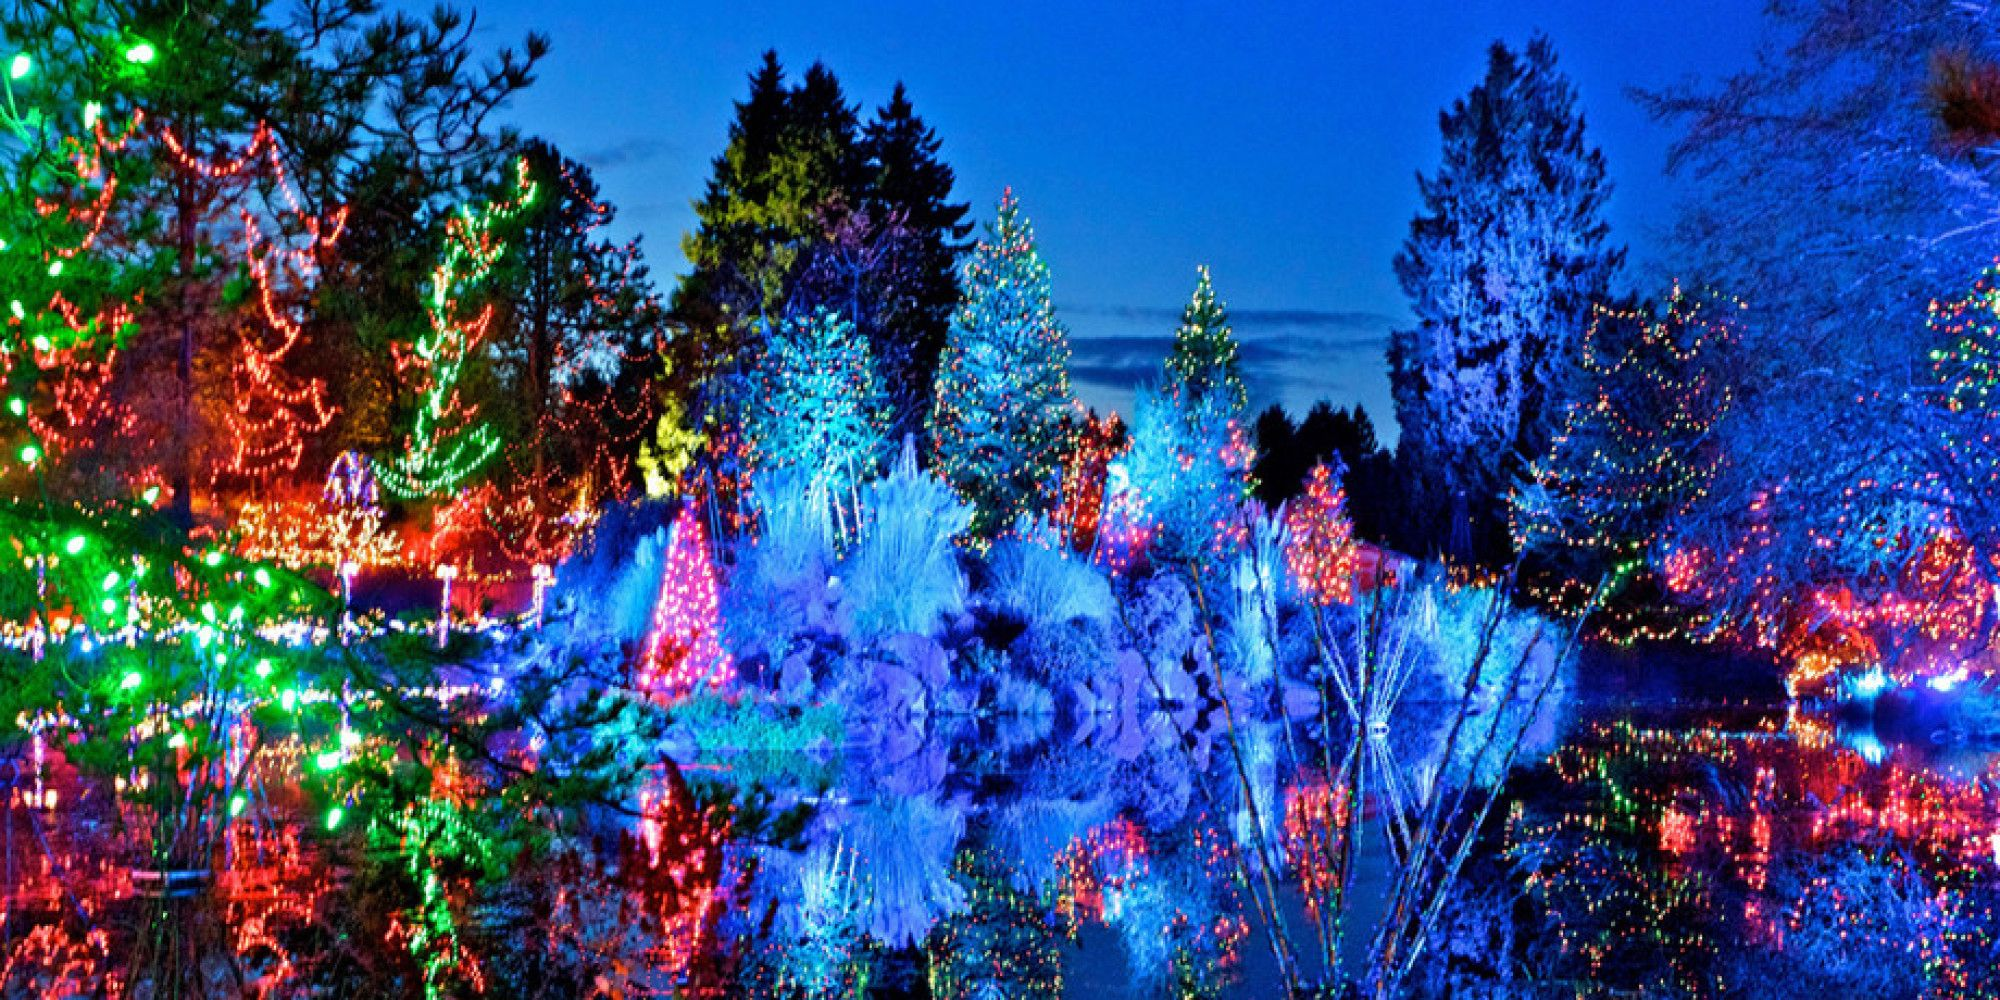 Image from http://i.huffpost.com/gen/1487460/images/o-CHRISTMAS-LIGHTS-VANCOUVER-facebook.jpg.